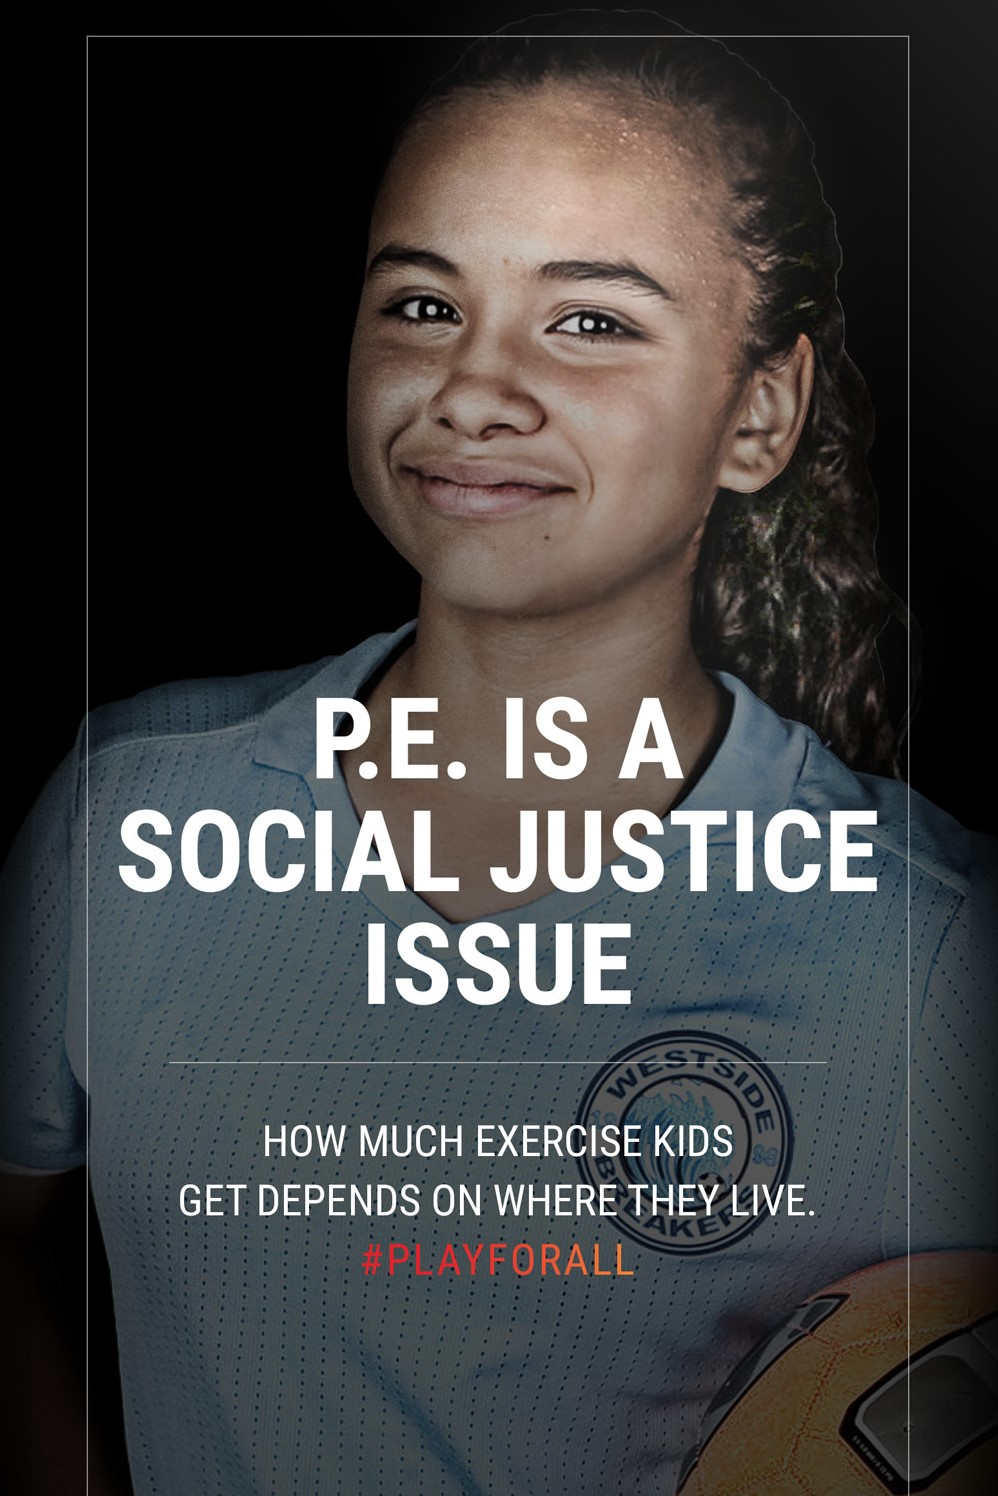 P.E. Is A Social Justice Issue 9-28-17 website